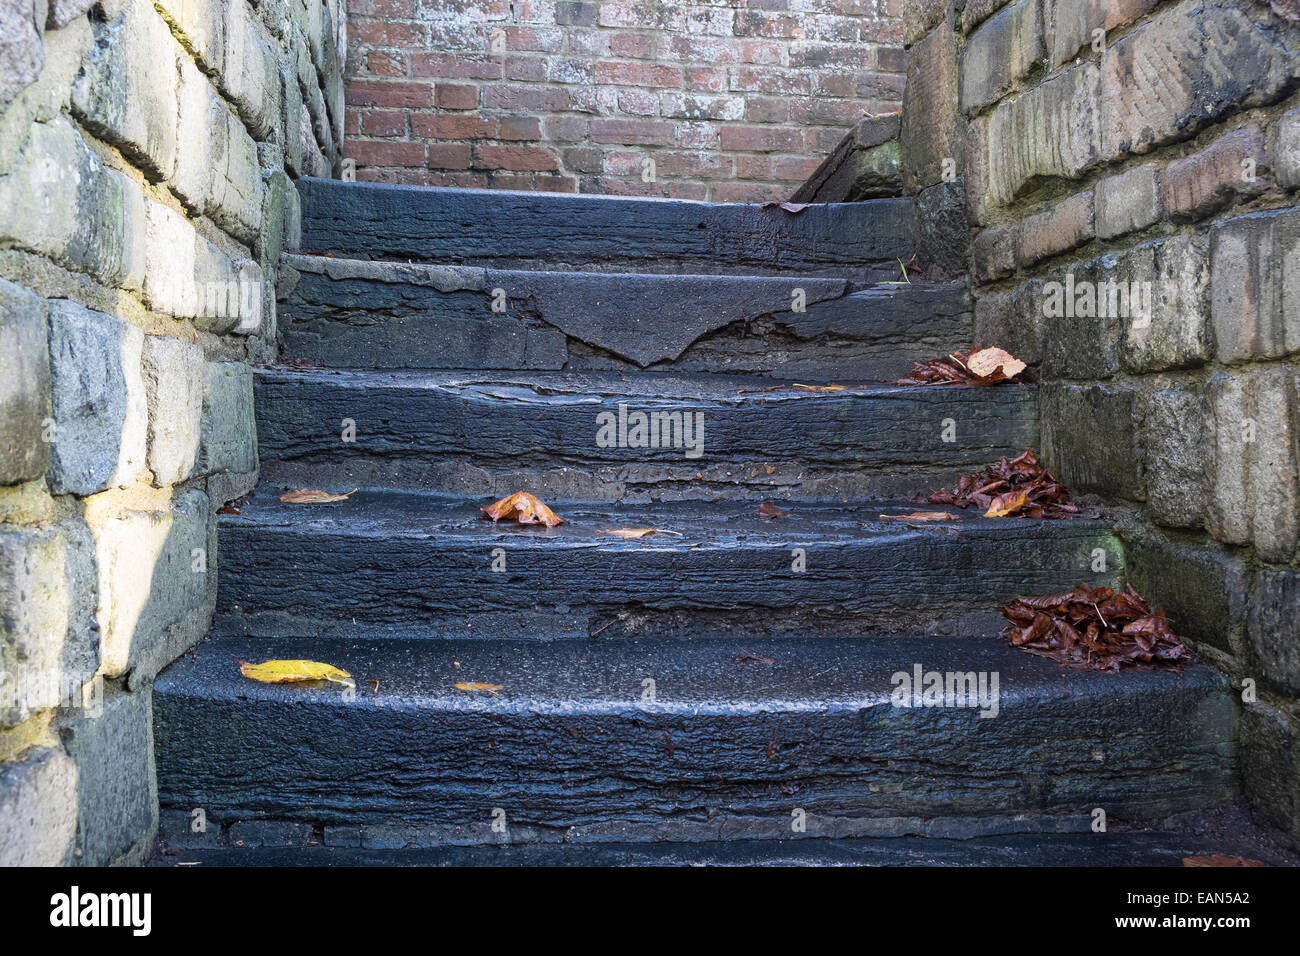 dangerous in the autumn and winter slippery stone and concrete steps coated with wet slime and covered with fallen - Stock Image